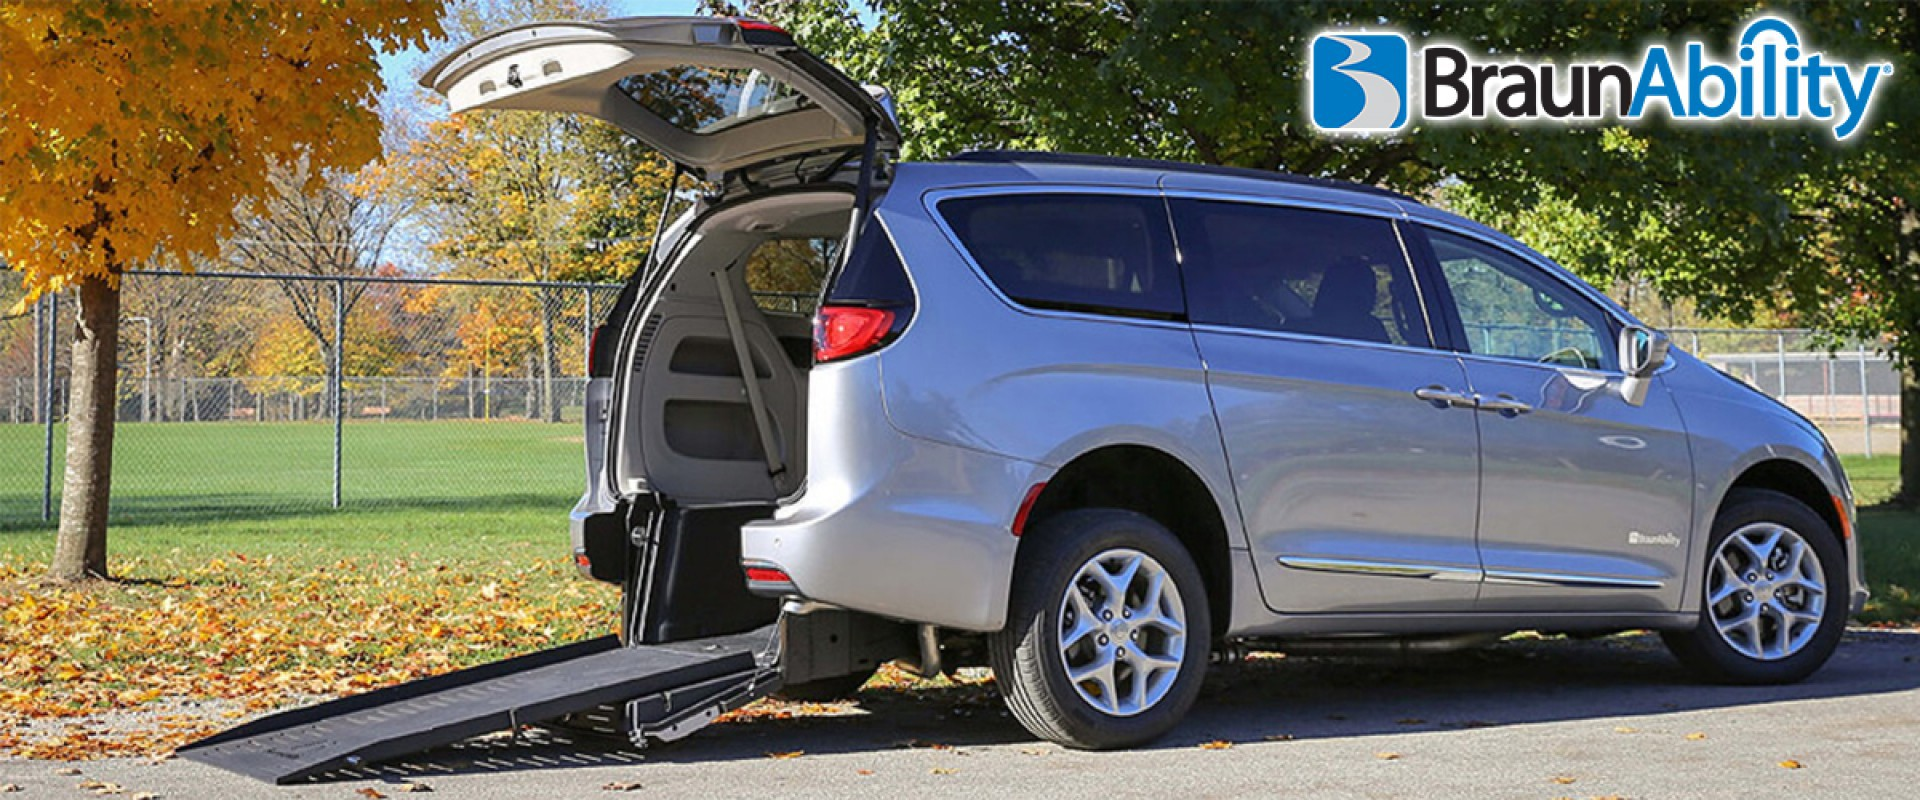 The All NEW 2017 Chrysler Pacifica by BraunAbility (1 of 1)